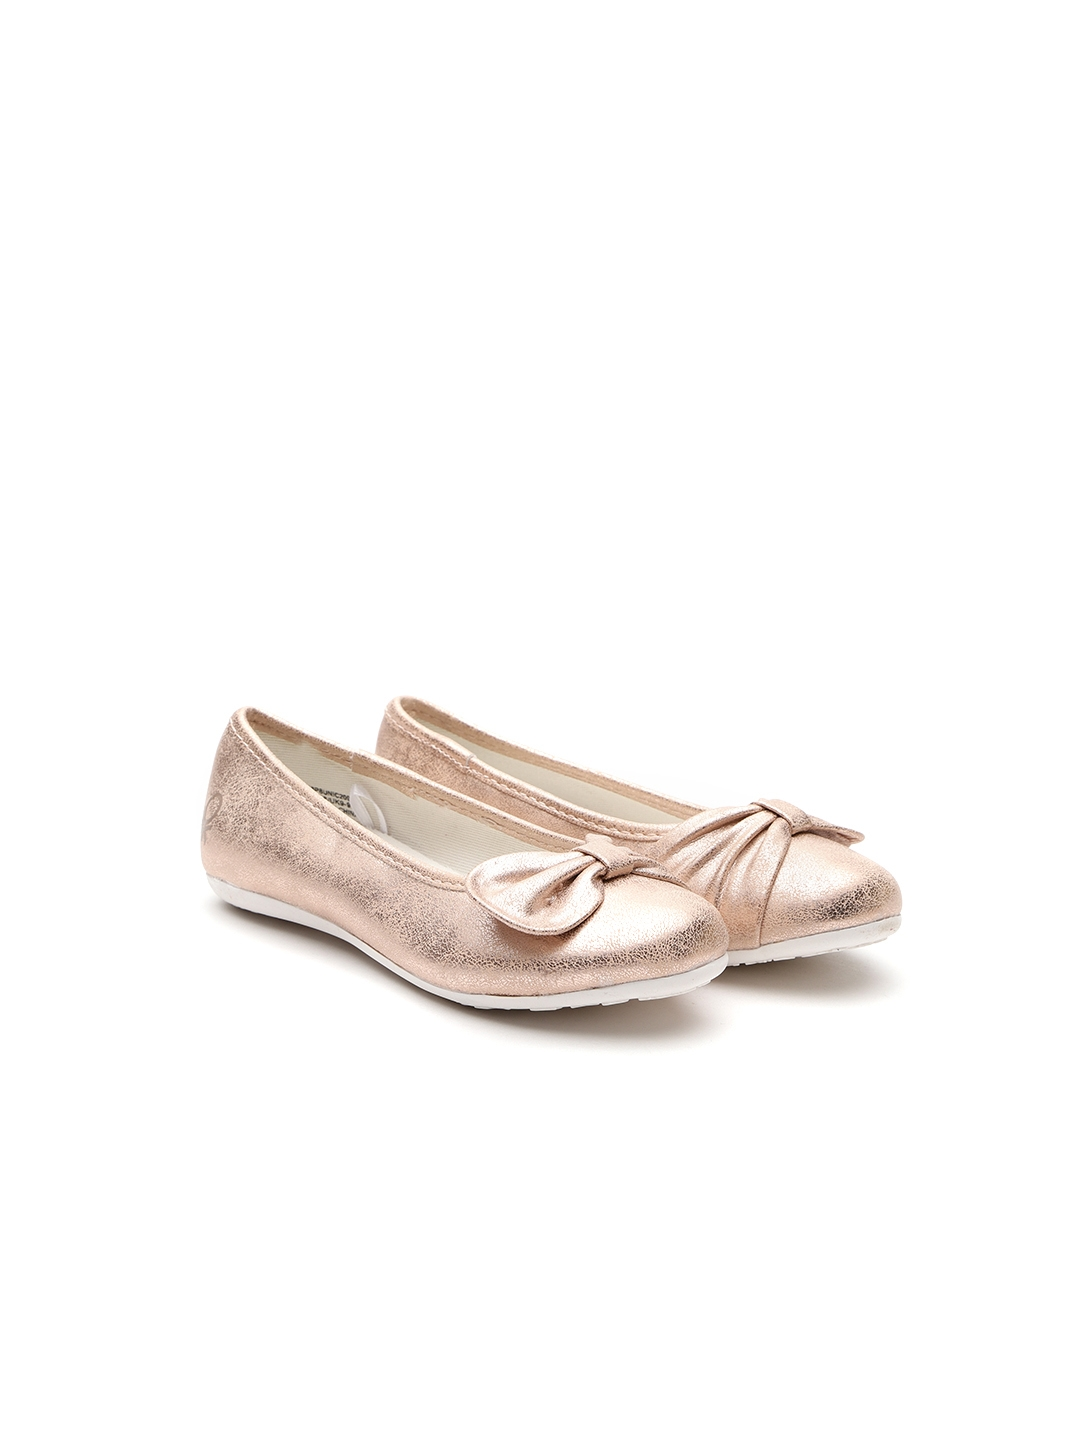 a30303df022f United Colors of Benetton Girls Rose Gold-Toned Solid Synthetic Ballerinas